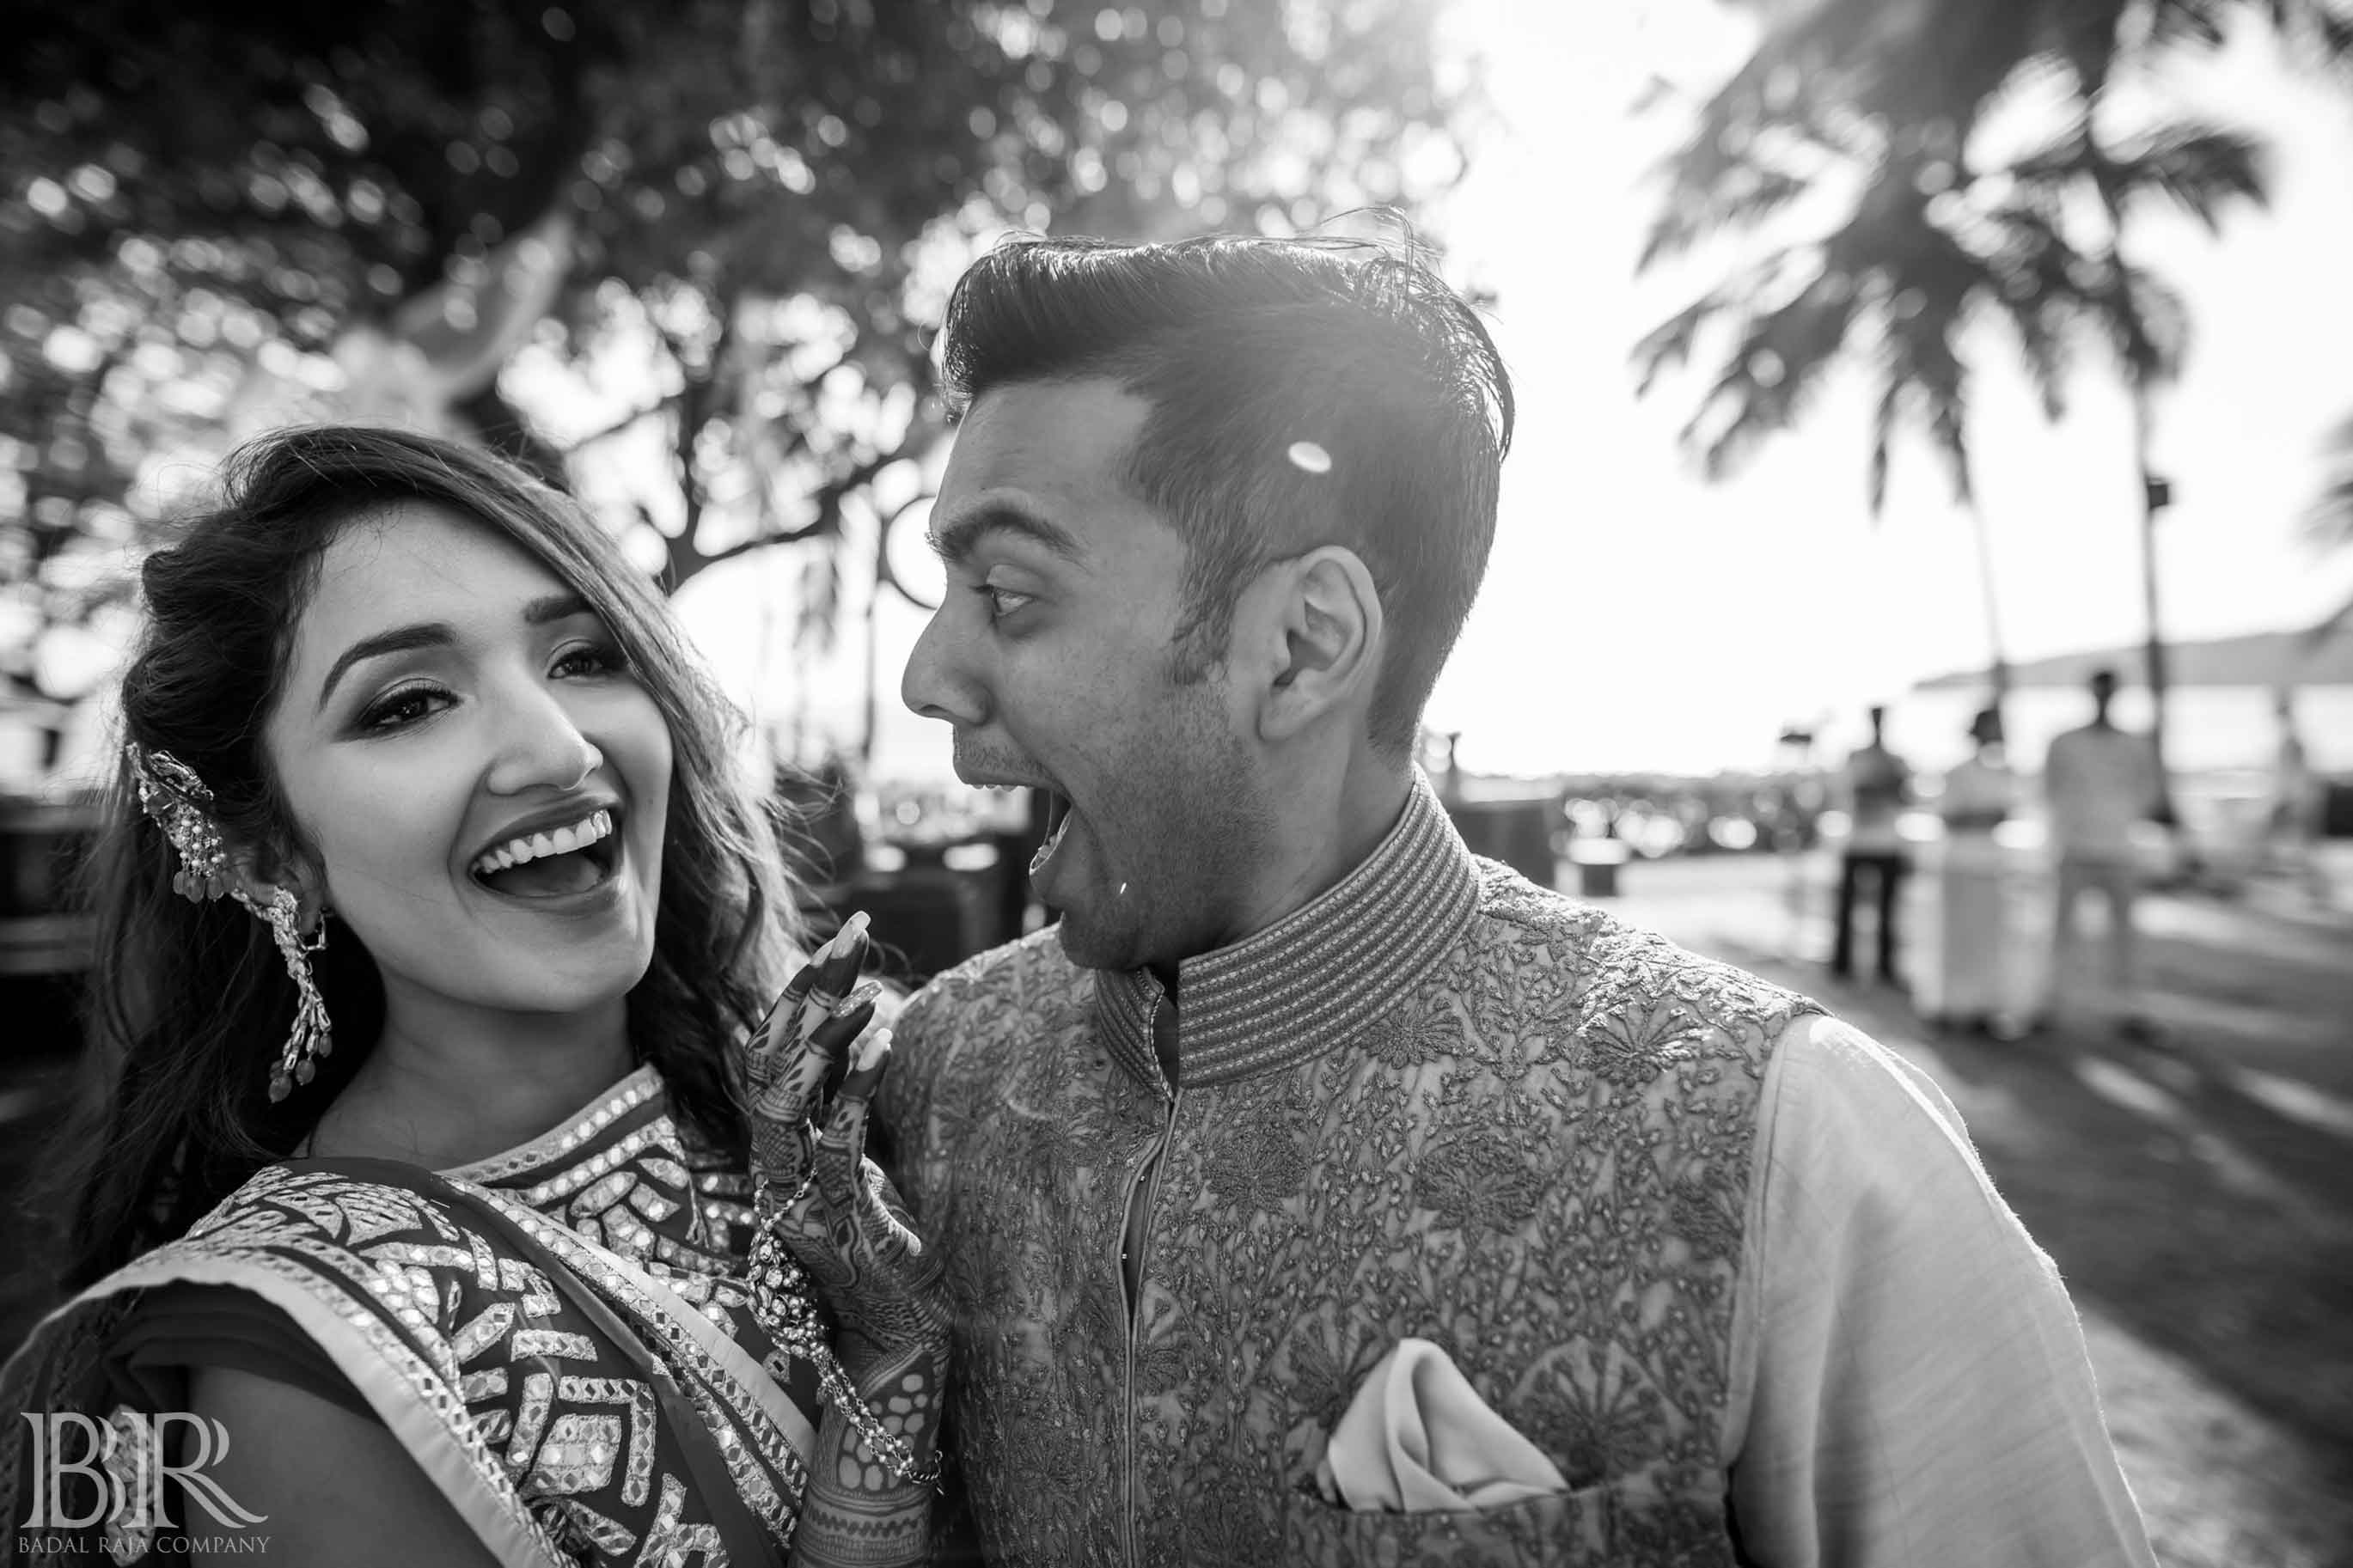 black and white photos, black and white photography, wedding photography, wedding photographer in delhi- badal raja company